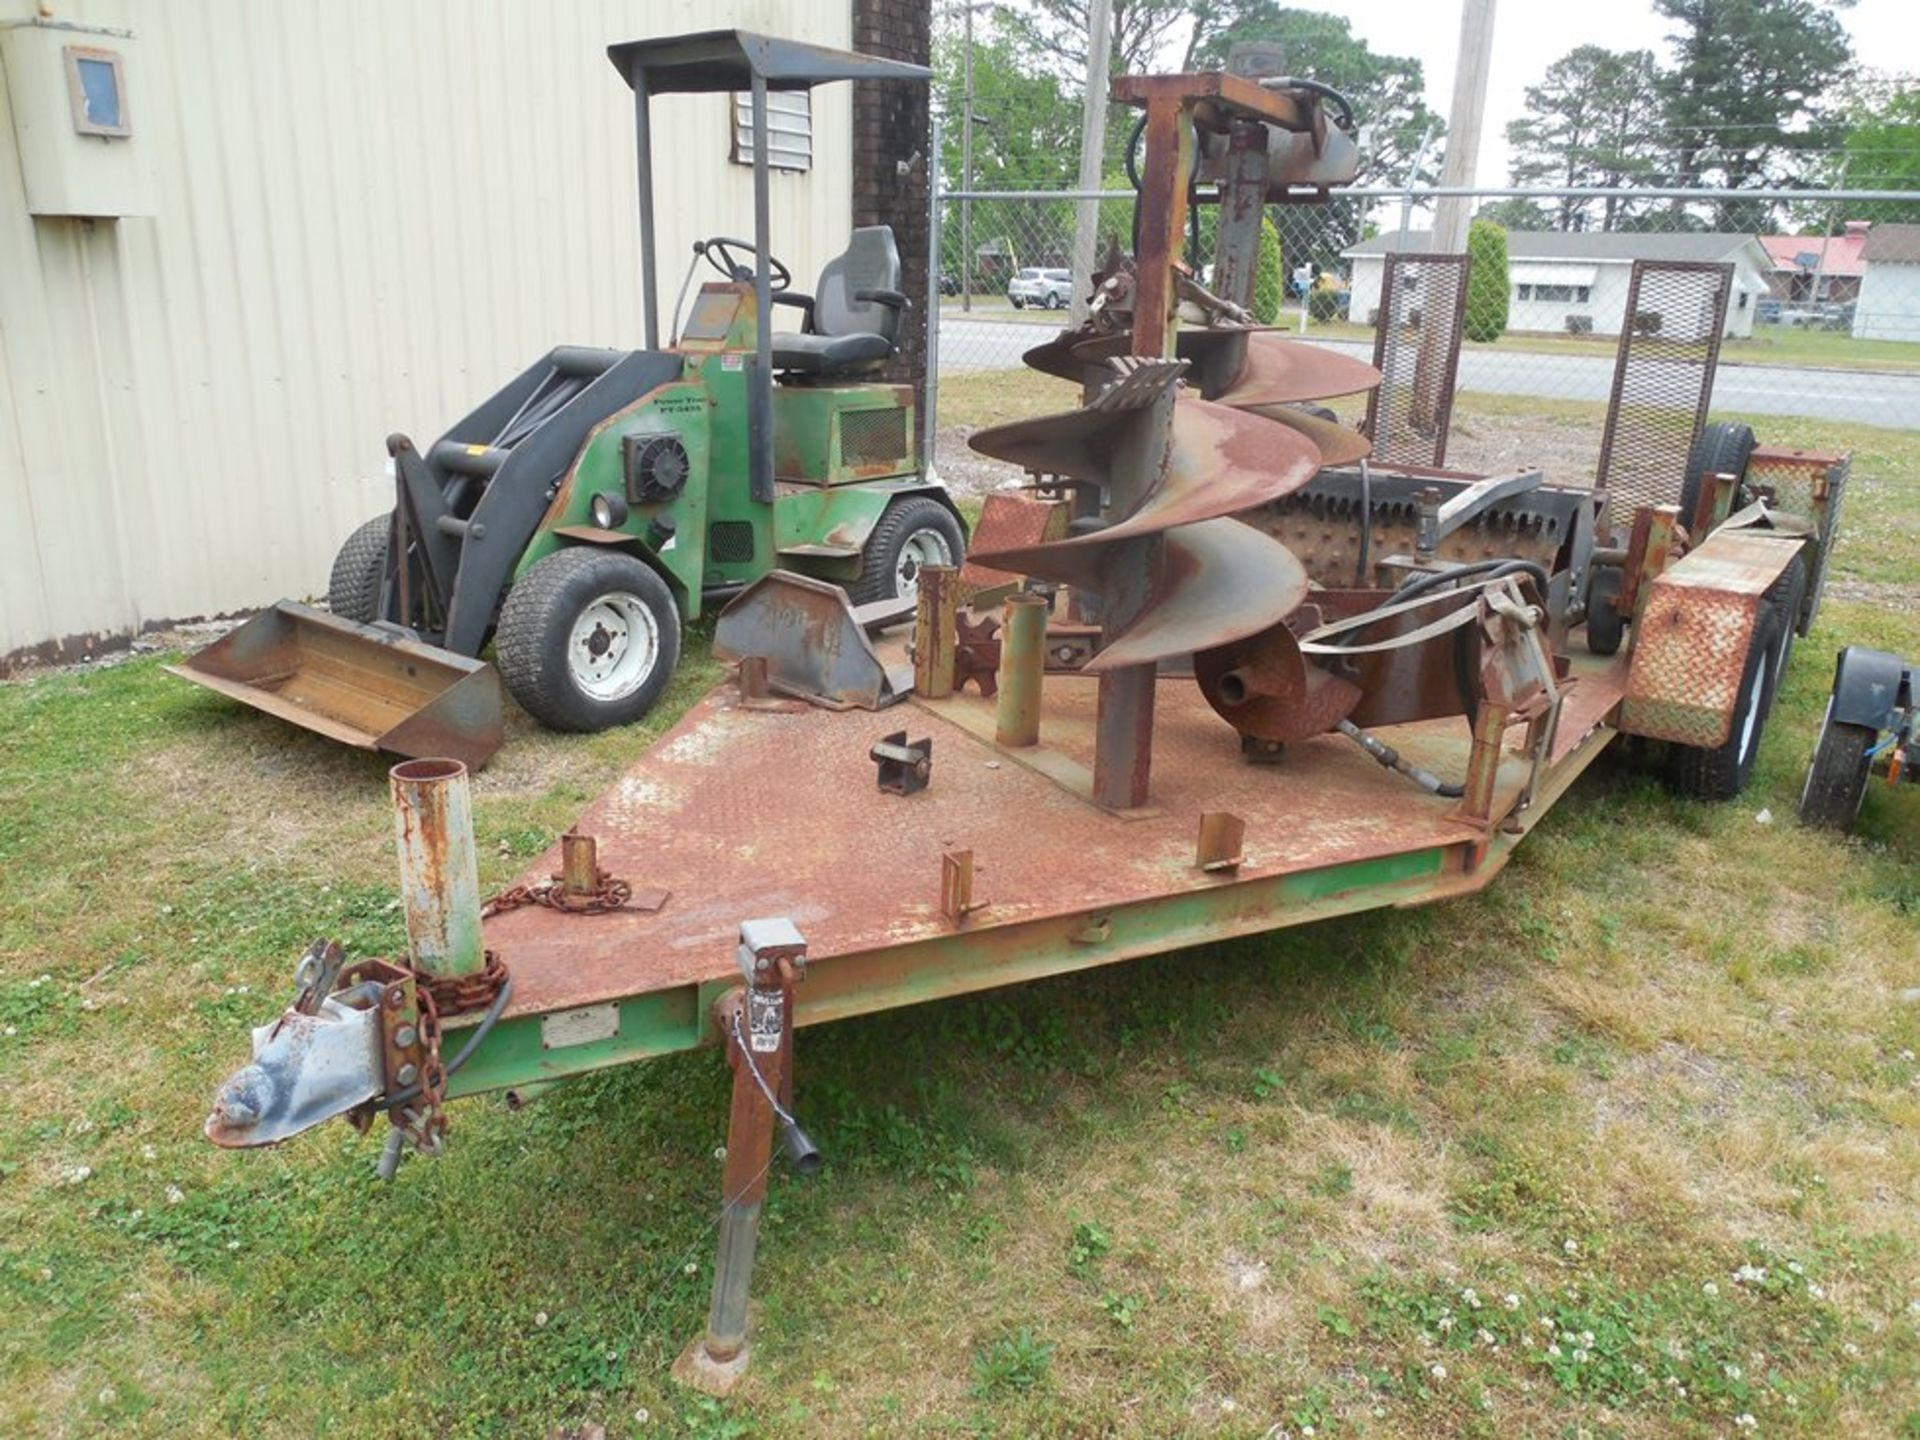 Power Trac PT-2425 Mini Skid Steer ser# 18928 with trailer, power rake, tree spade, front bucket, - Image 8 of 13